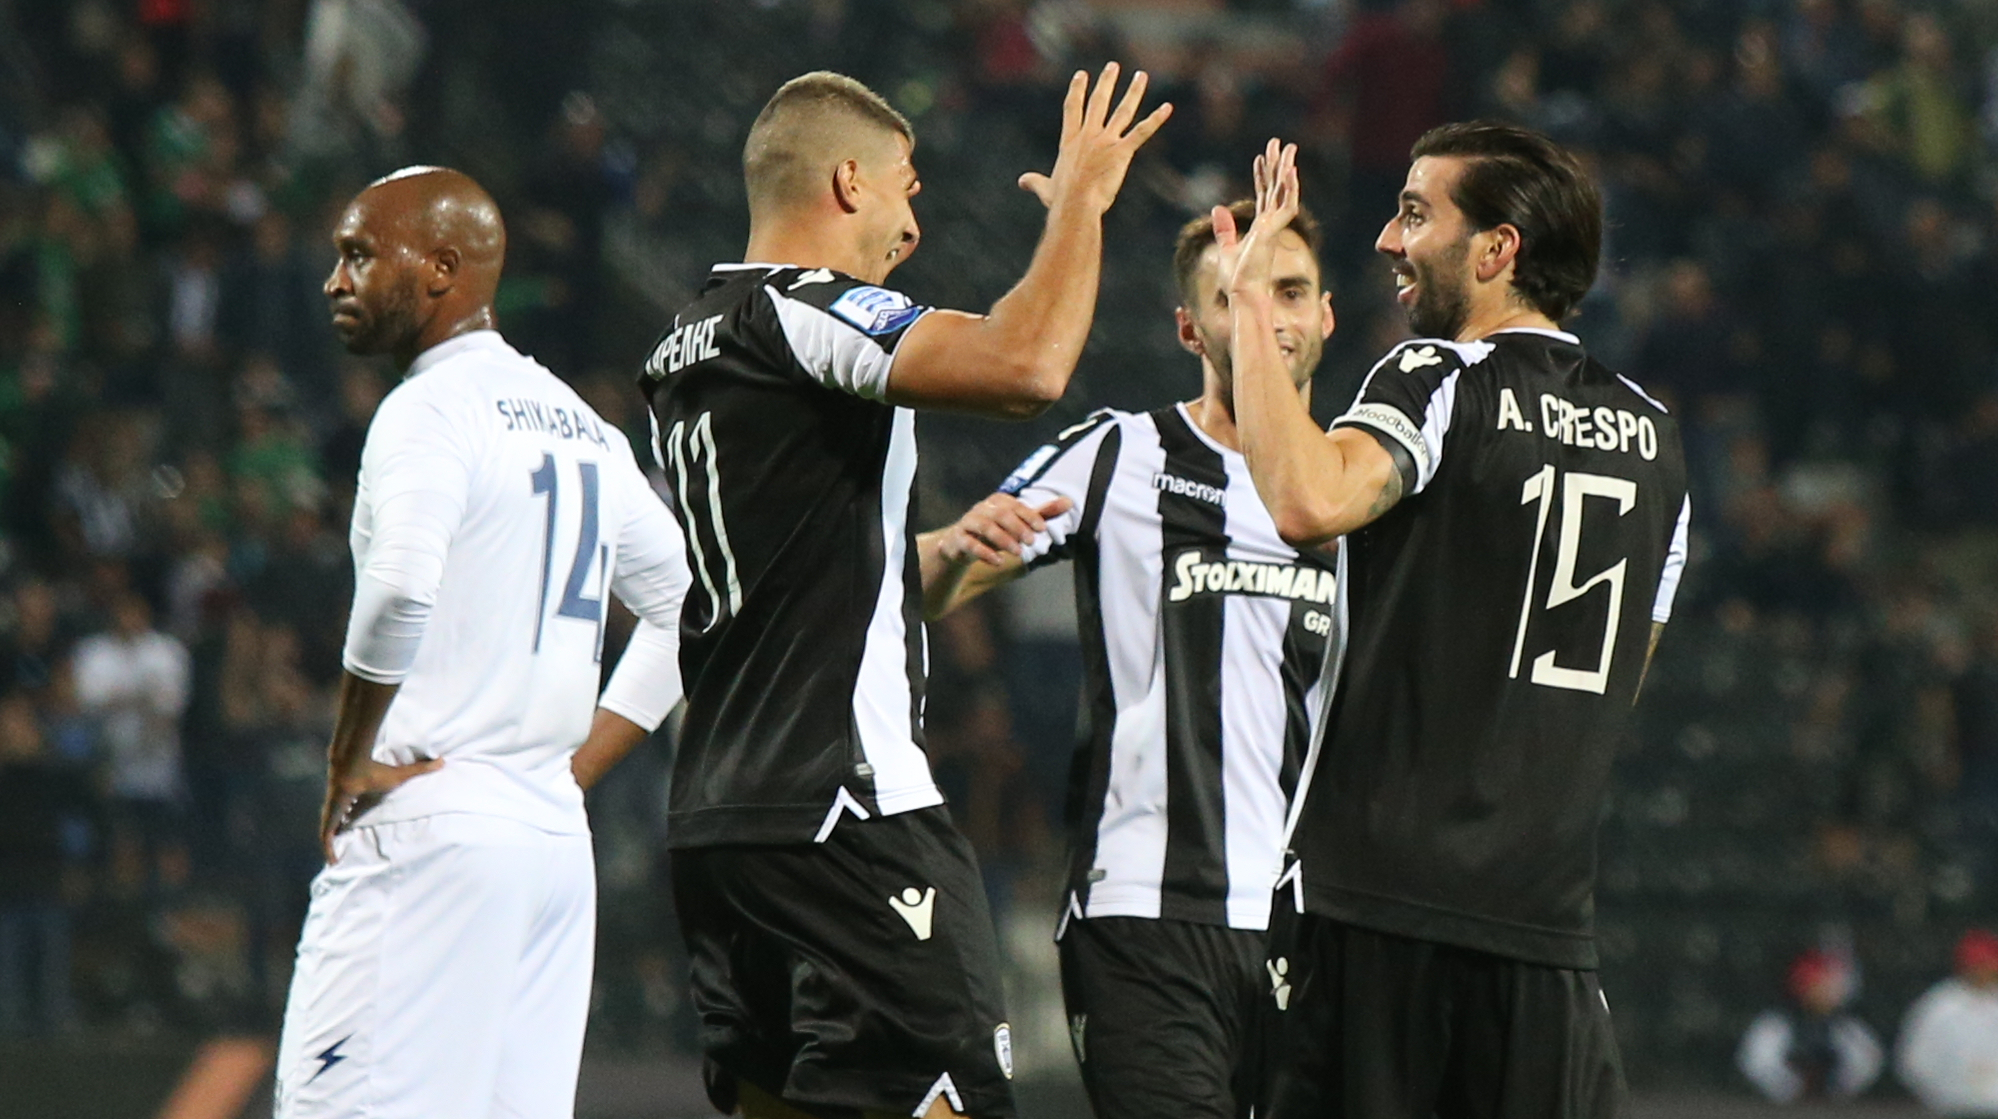 PAOK – Apollon Smyrni: Highlights